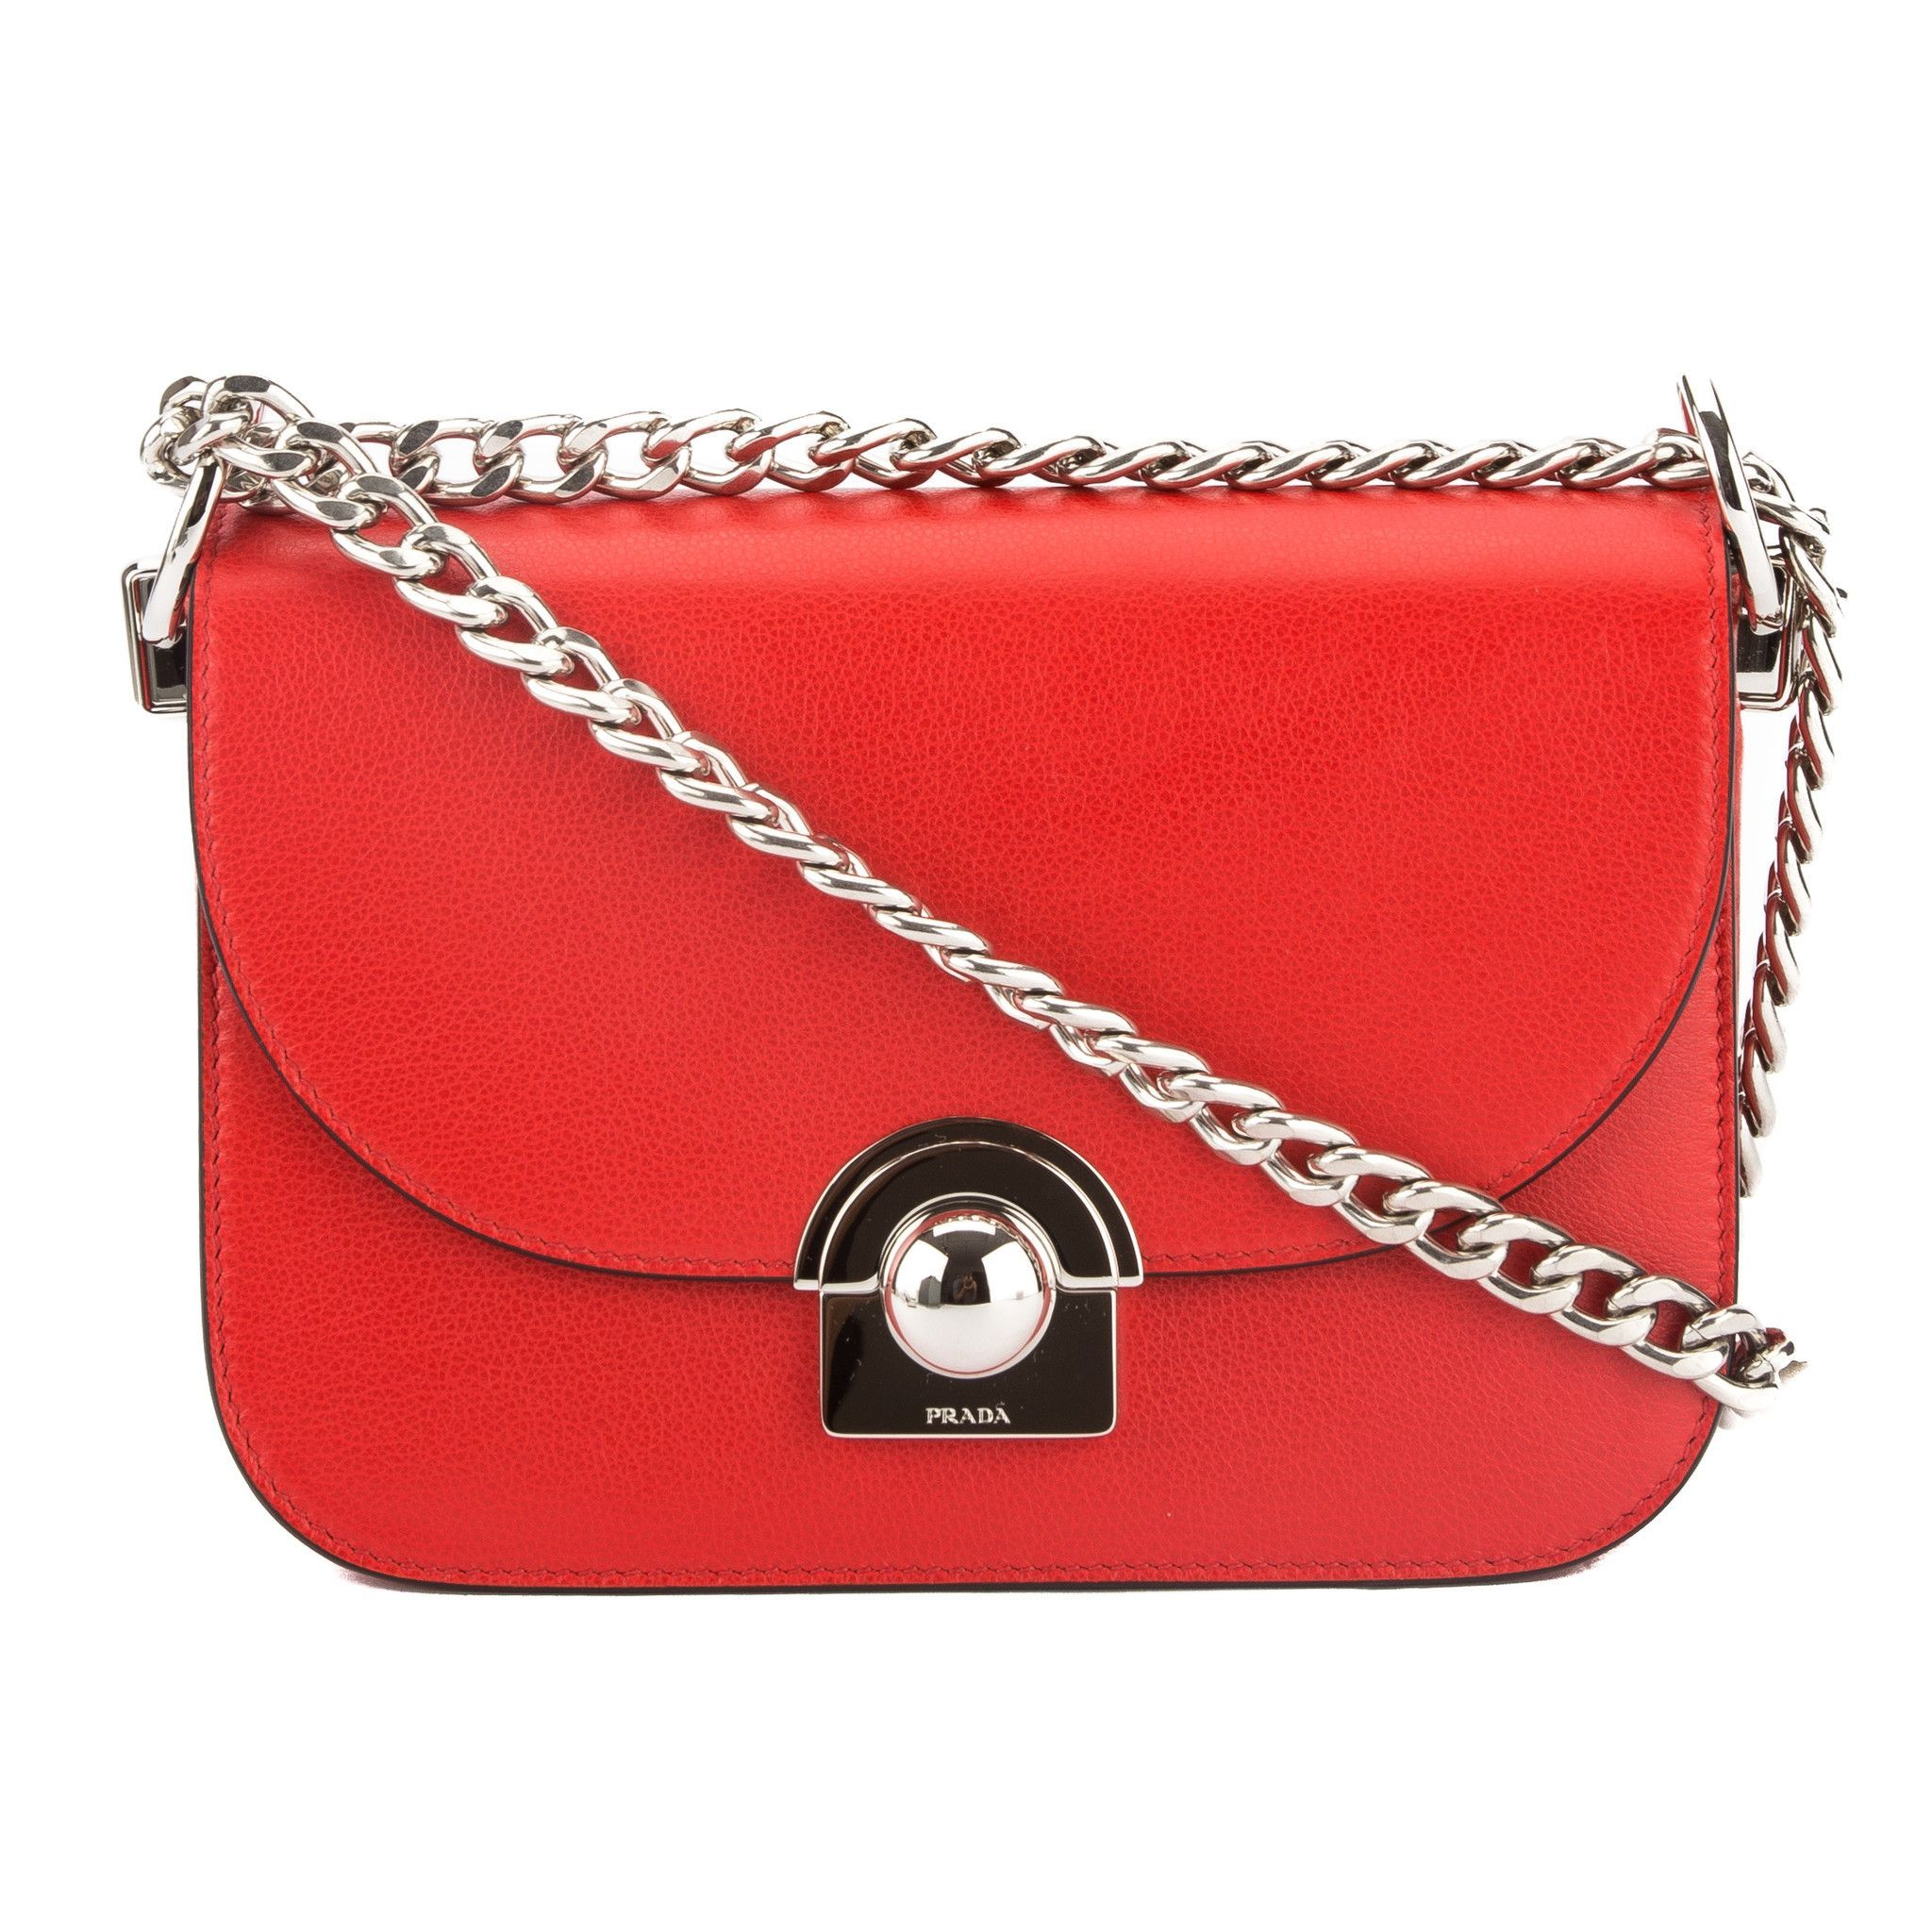 ... best website 731c2 ce154 Prada Lacquer Red Leather Arcade Bag (New with  Tags) ... 04754360645e3